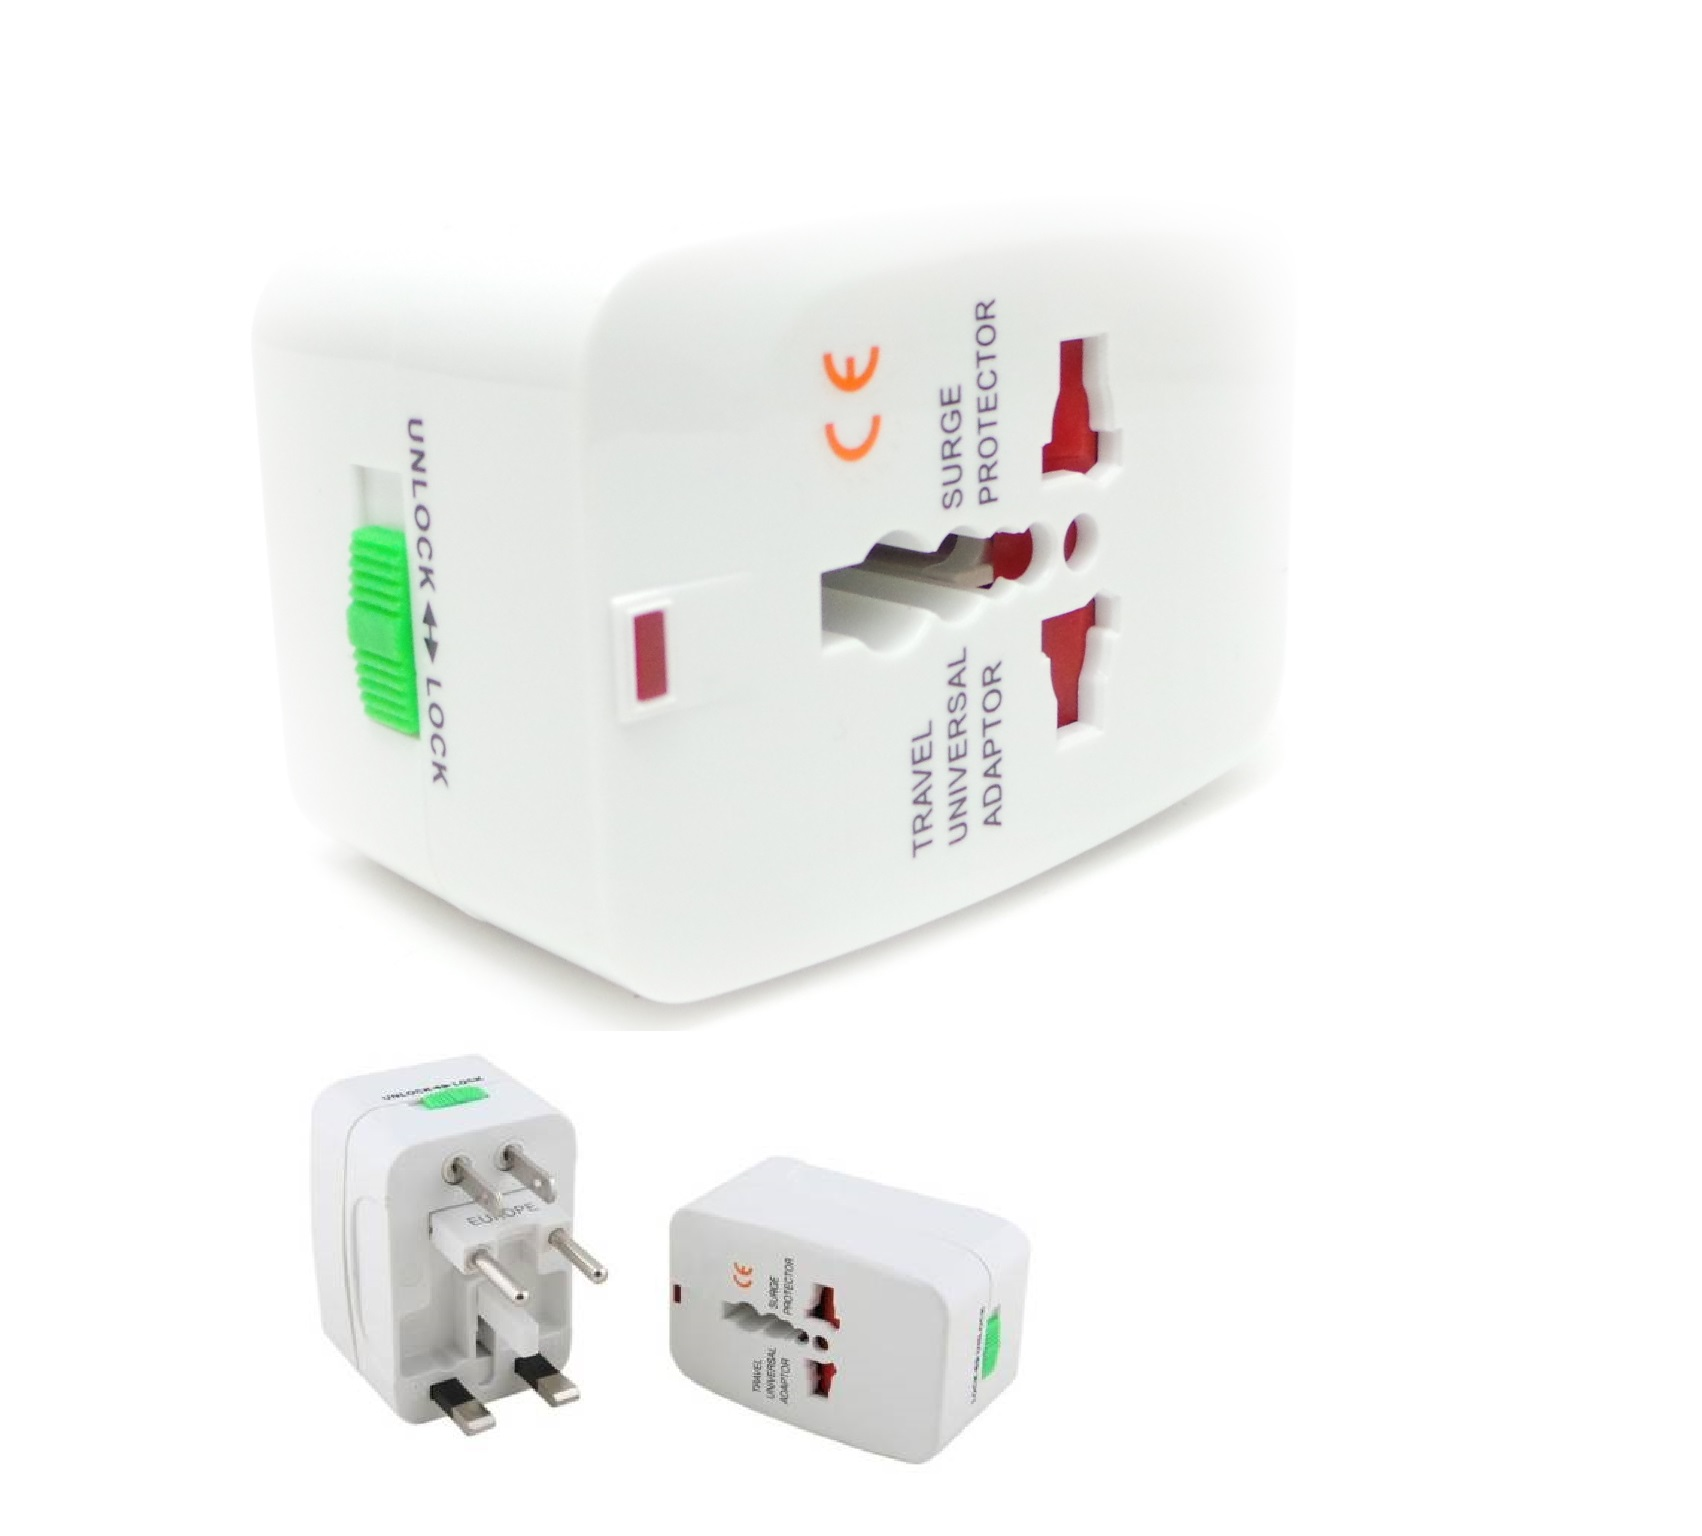 International Adapter Universal Power Outlet Plug Travel